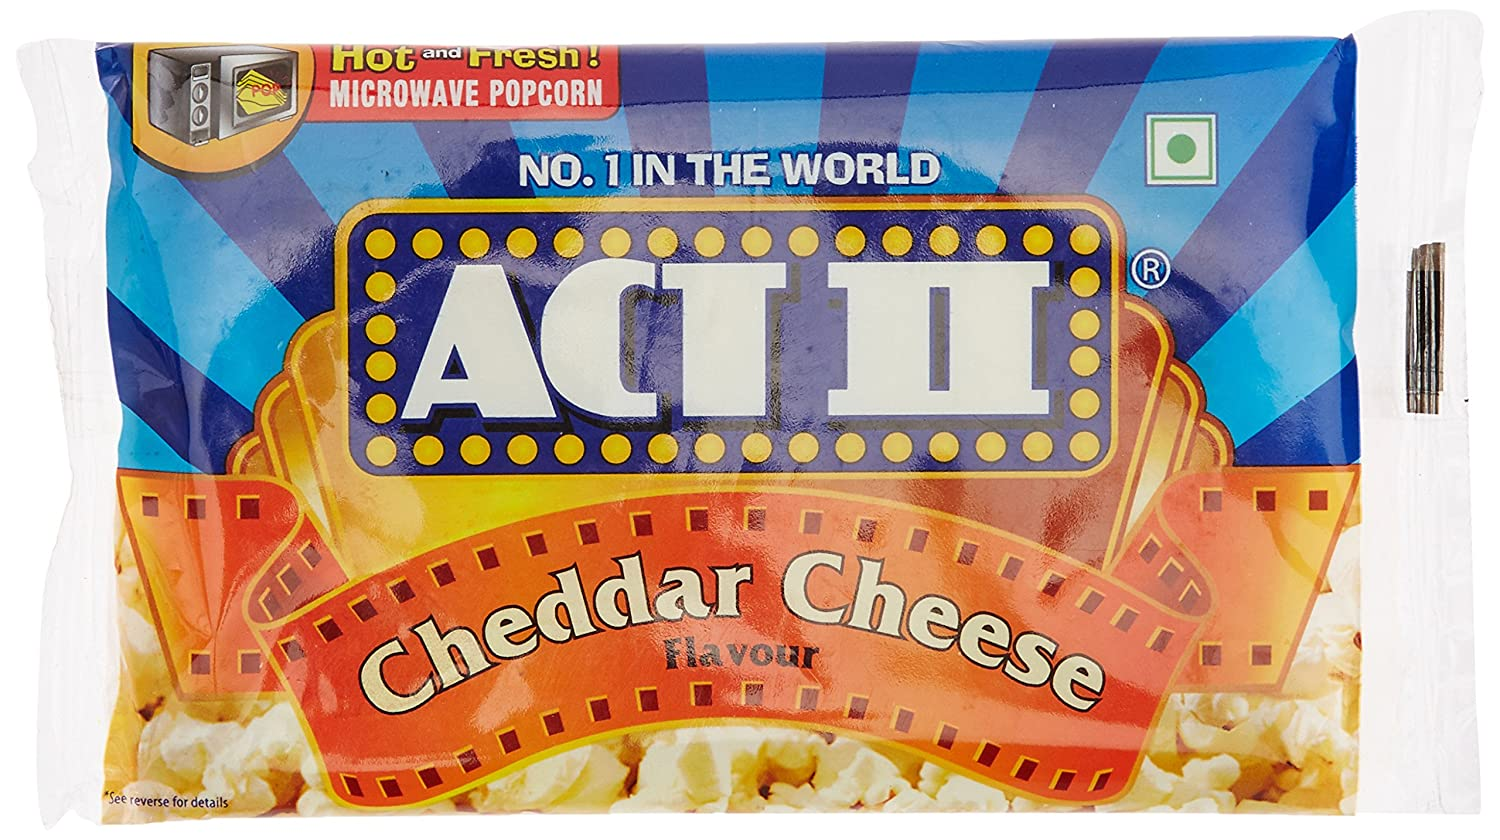 ACT II MWPC Cheddar Cheese, 99g